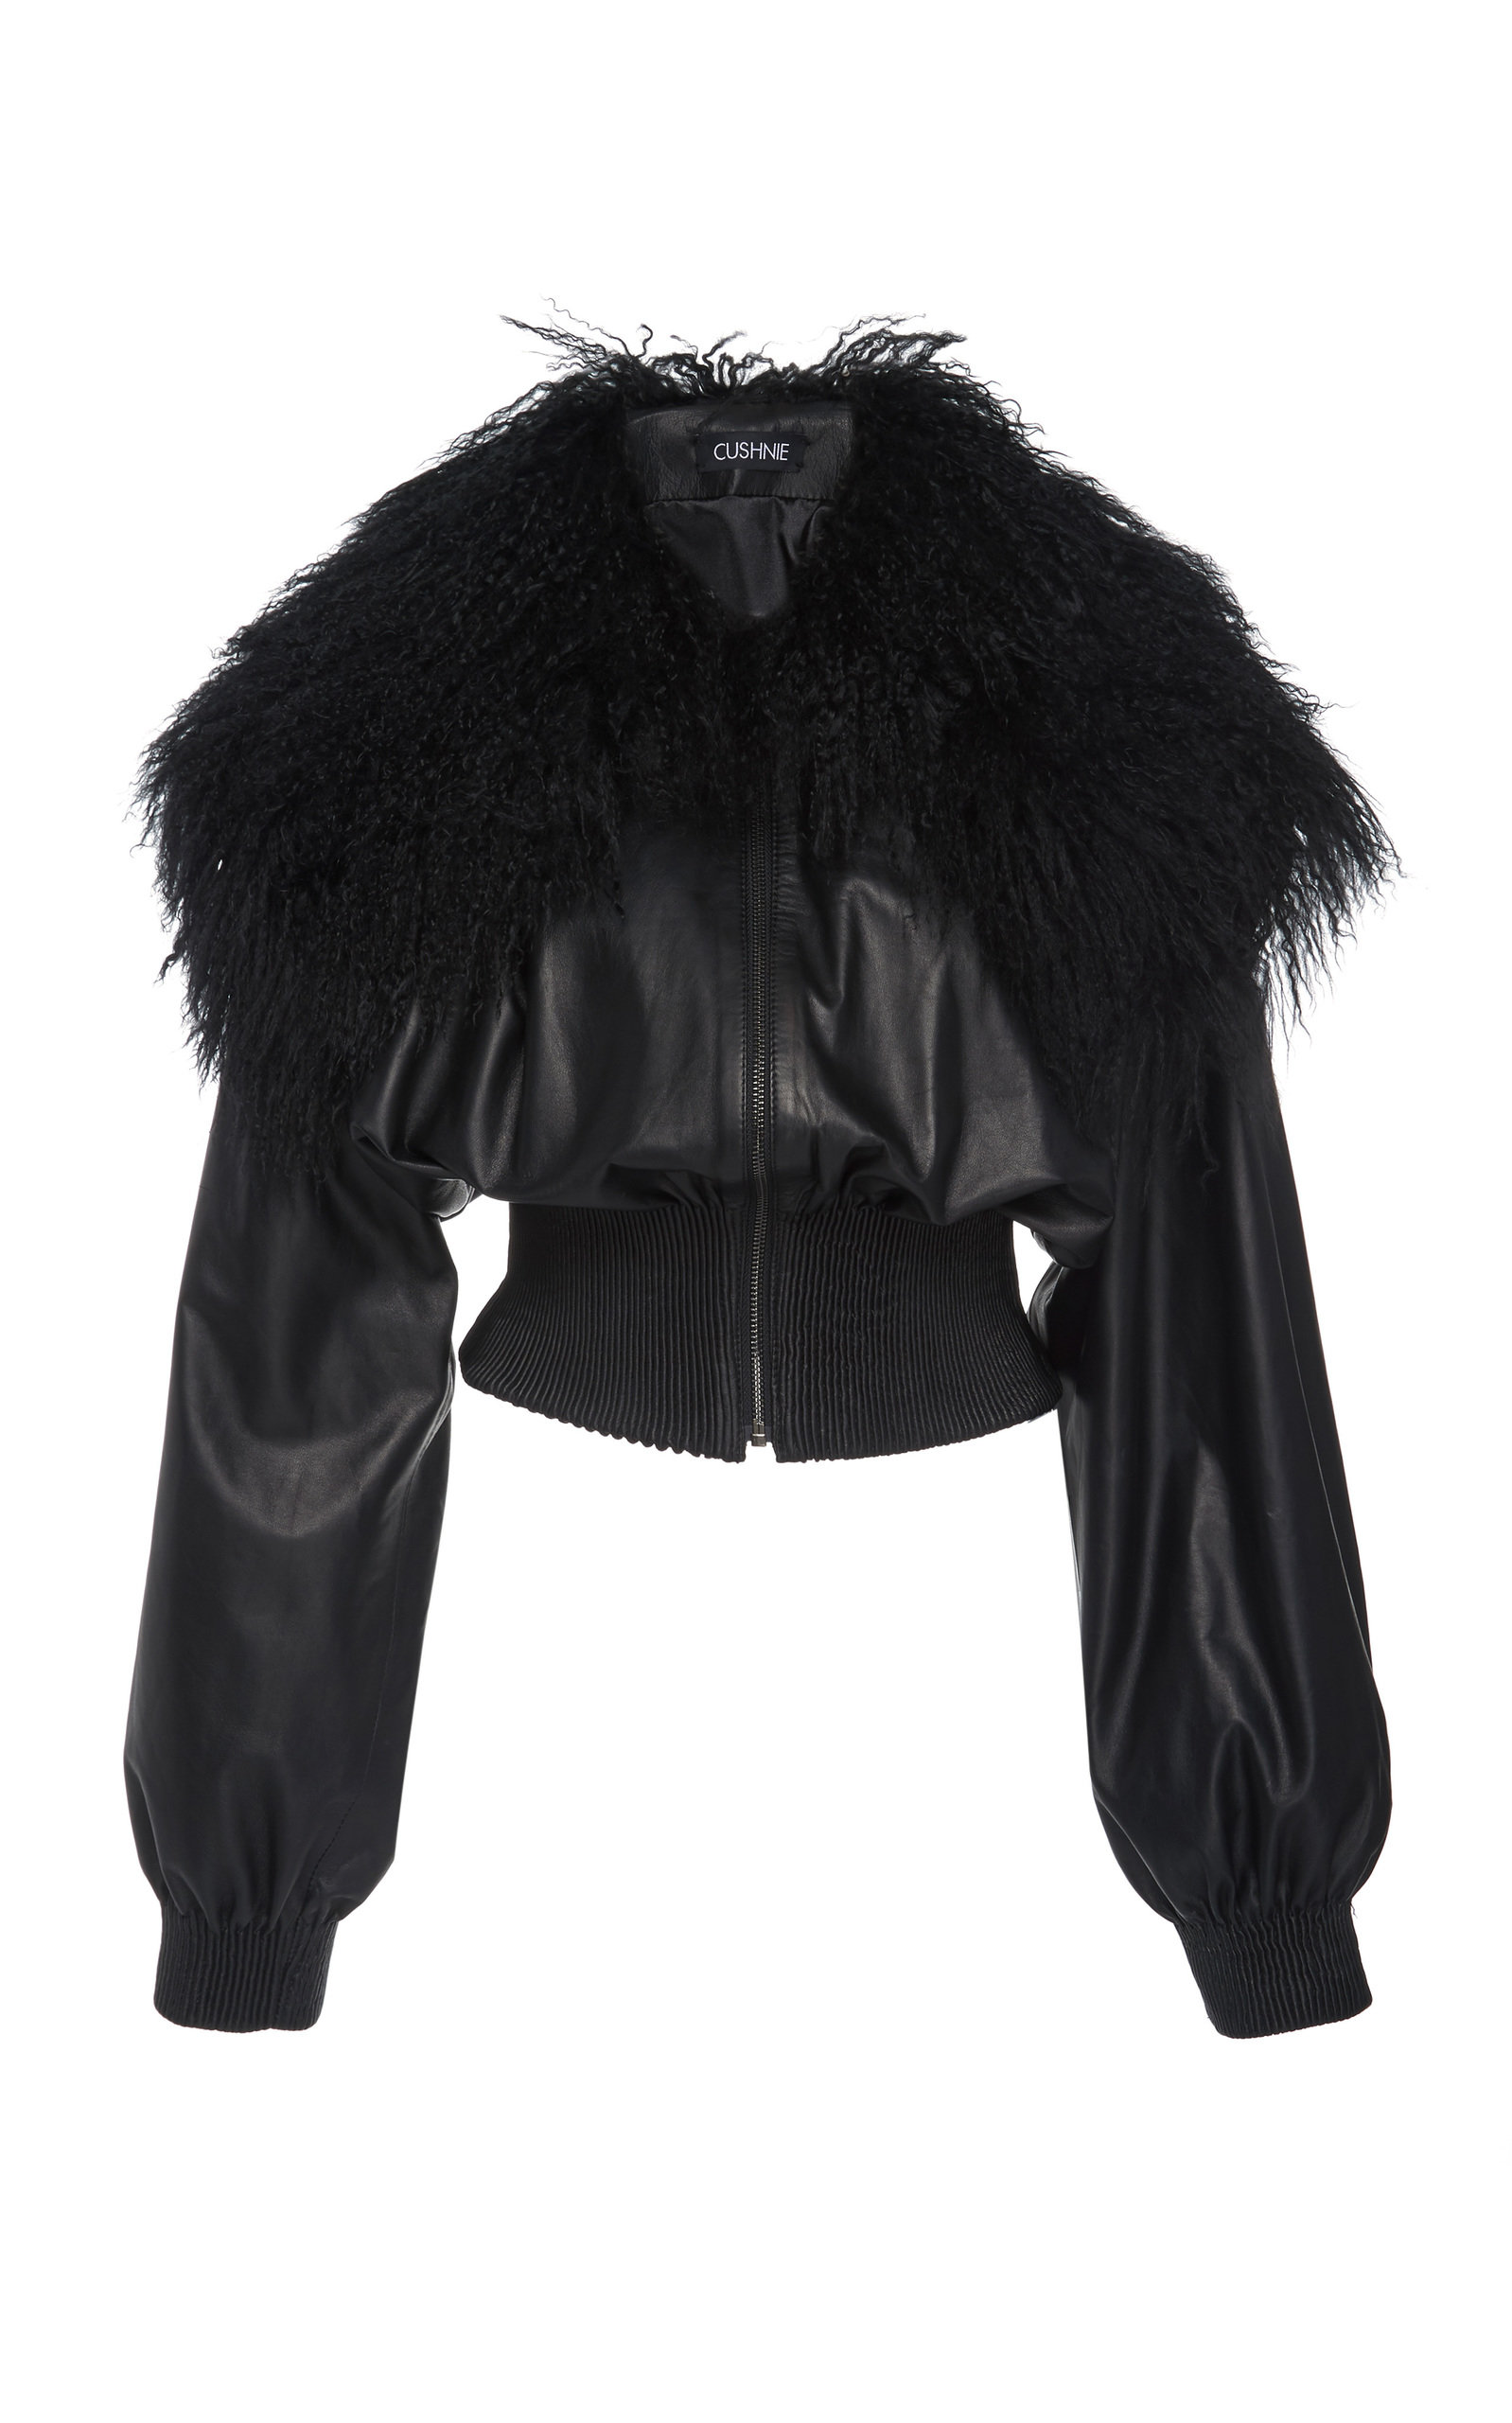 Cushnie Jackets SHEARLING-TRIMMED LEATHER BOMBER JACKET